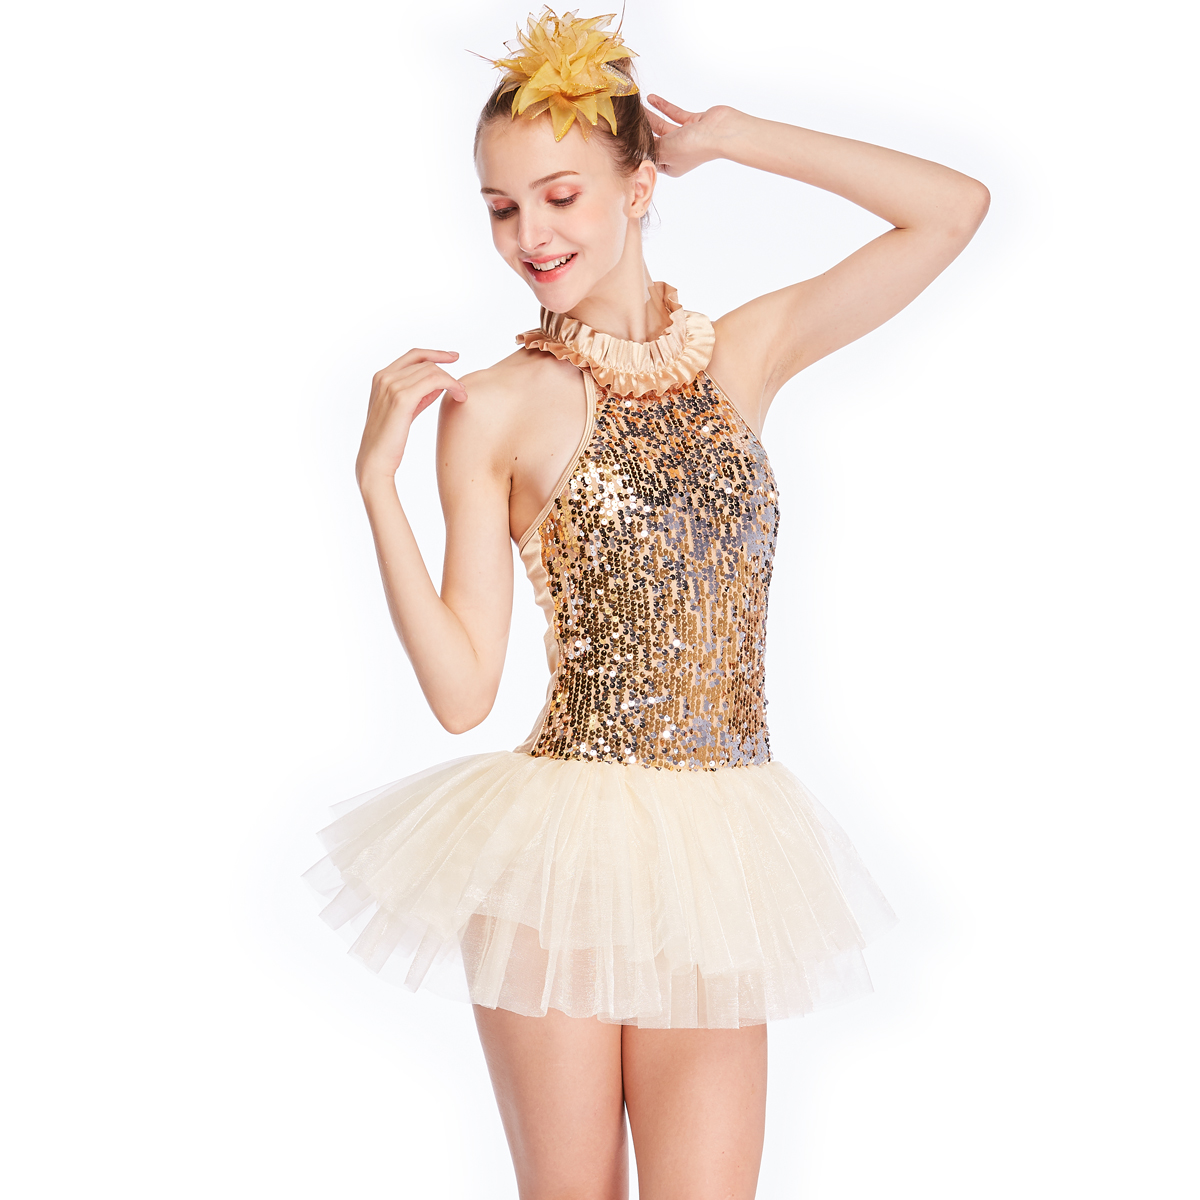 MIDEE tires ballet dresses for adults bulk production Stage-1